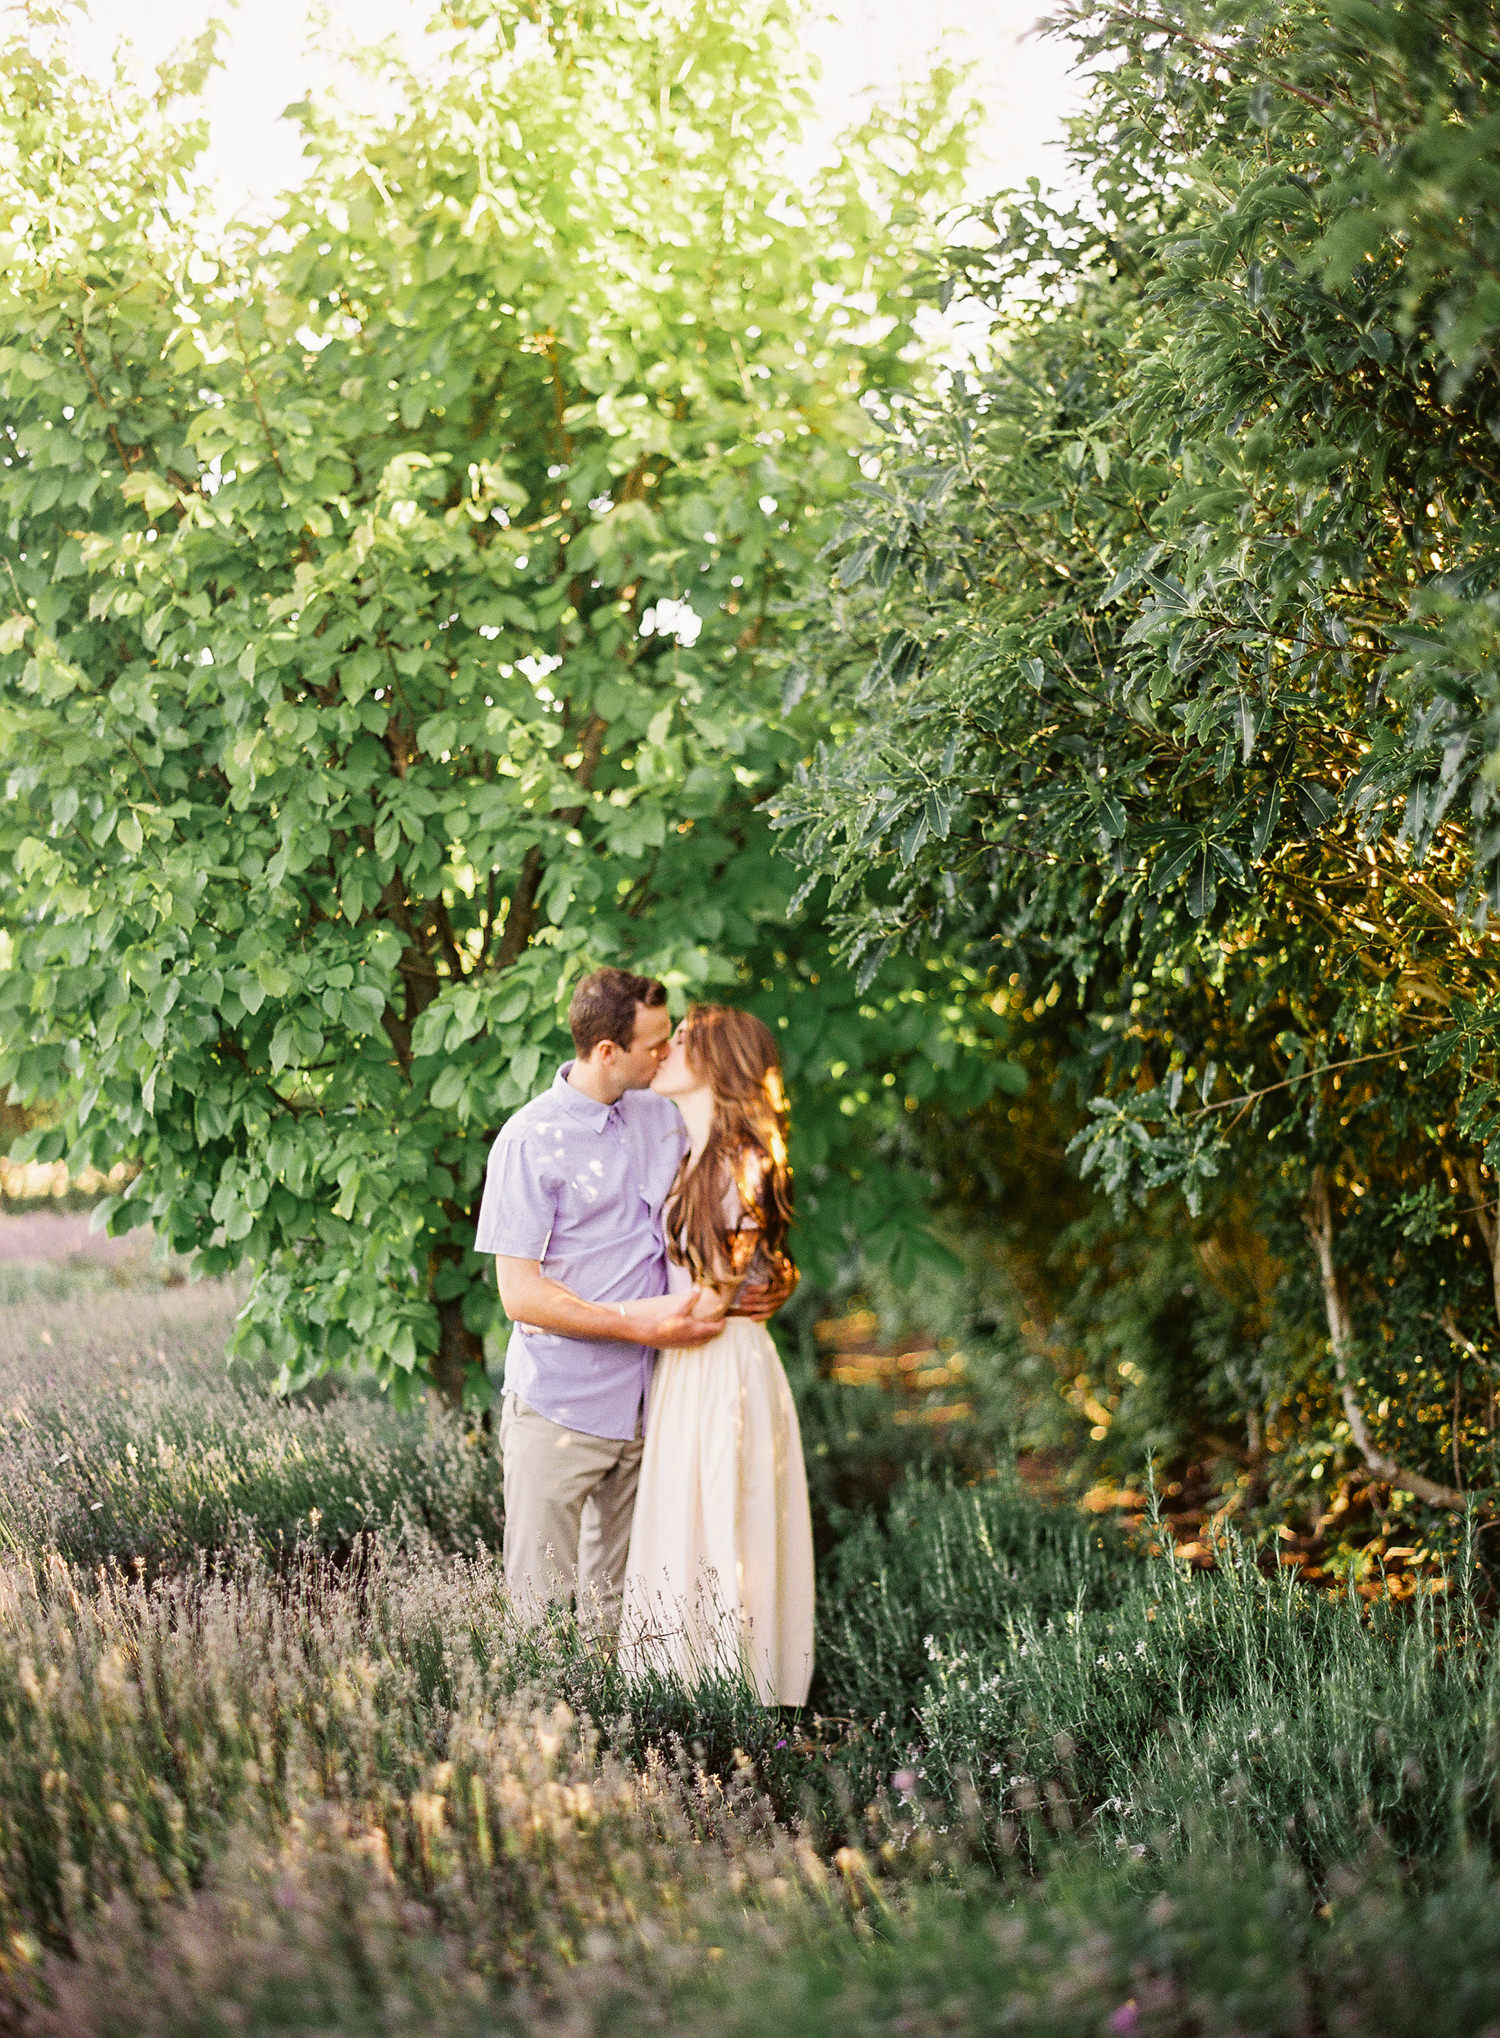 marionhphotography-marion_heurteboust-intimate_wedding_photographer-Kaikoura_Lavender_Farm_and_Dylans_Cottages-new_zealand